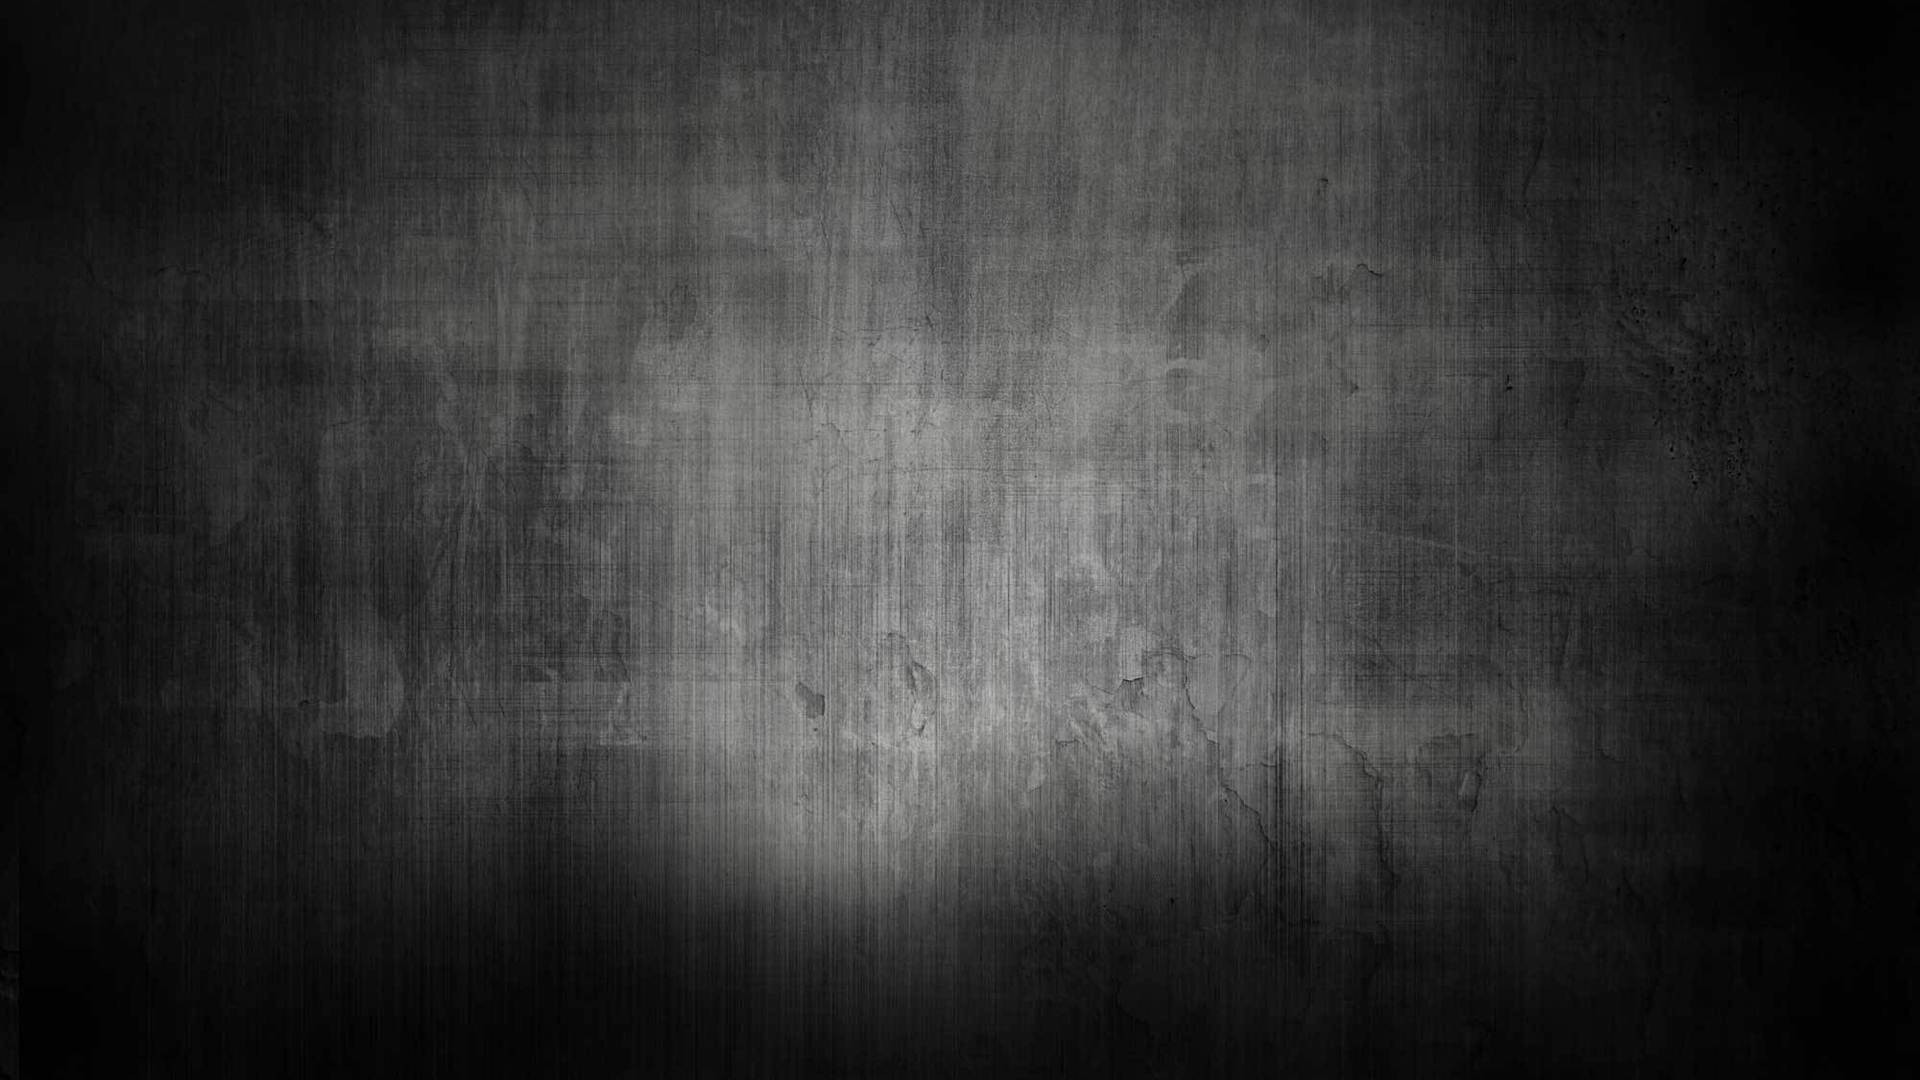 Vertical Full Hd Wallpapers Background Textures 183 ① Download Free High Resolution